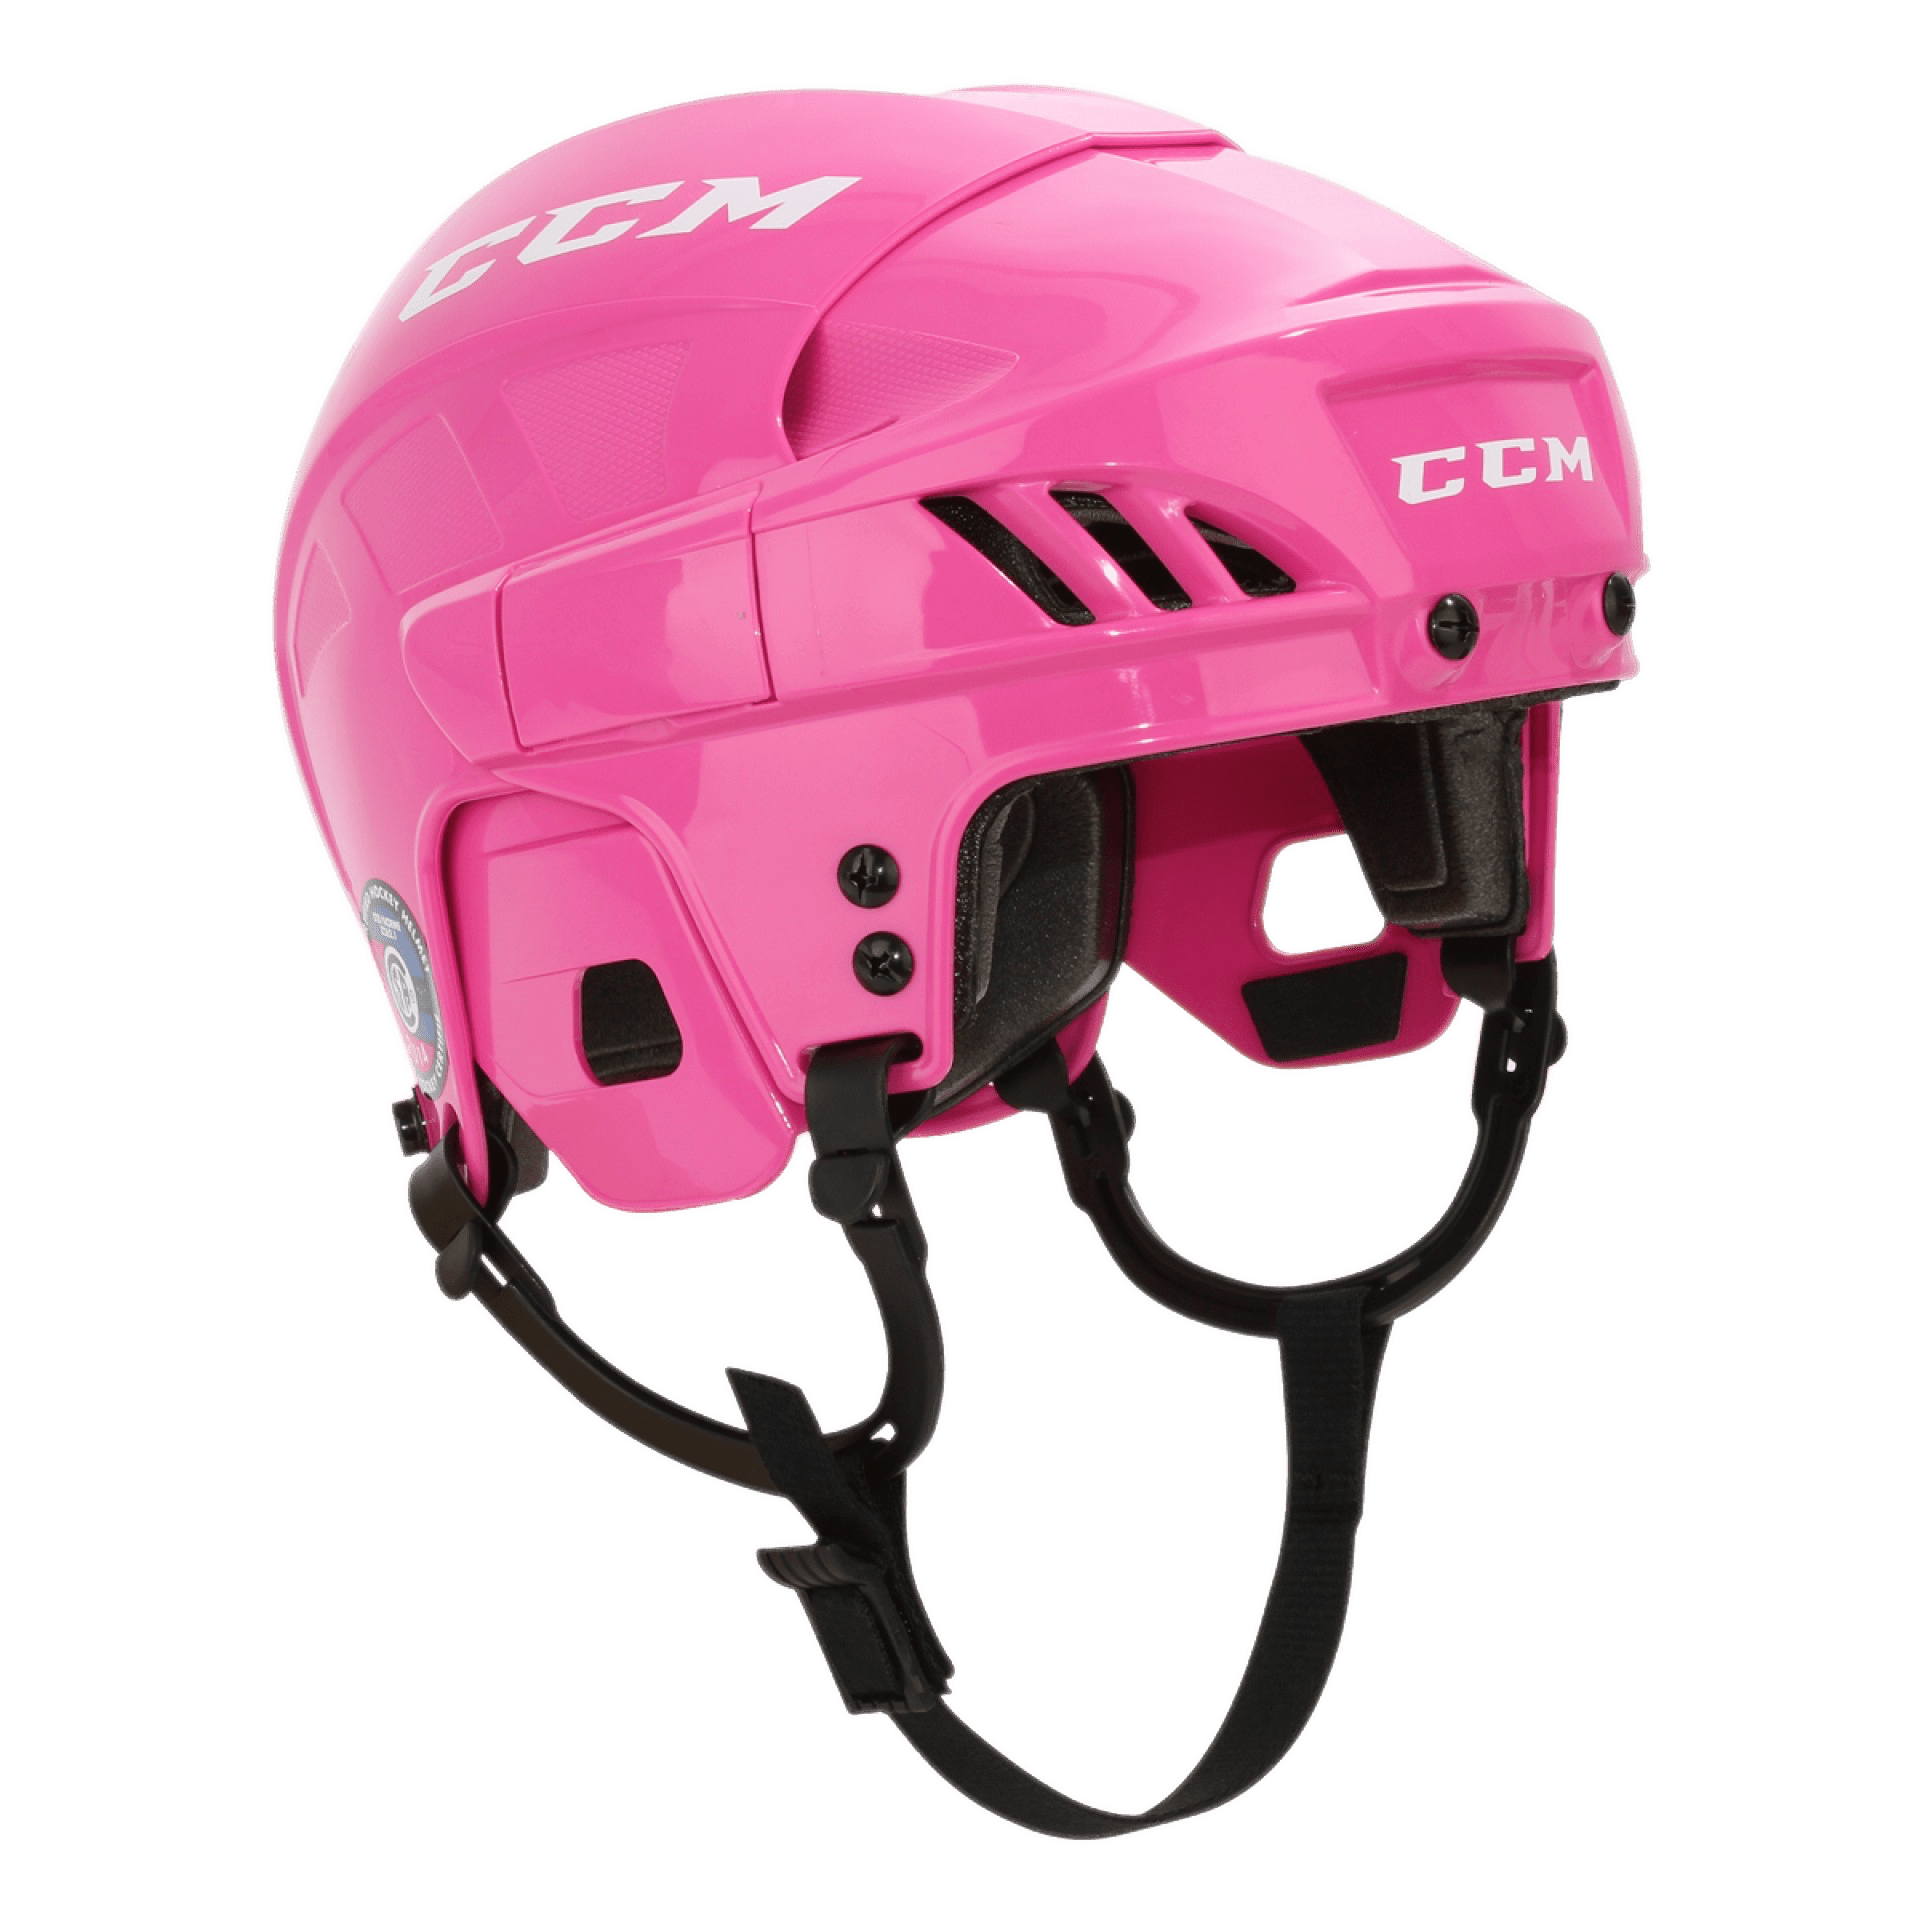 Ccm hockey clipart clipart transparent Pink CCM Hockey Helmet transparent PNG - StickPNG clipart transparent